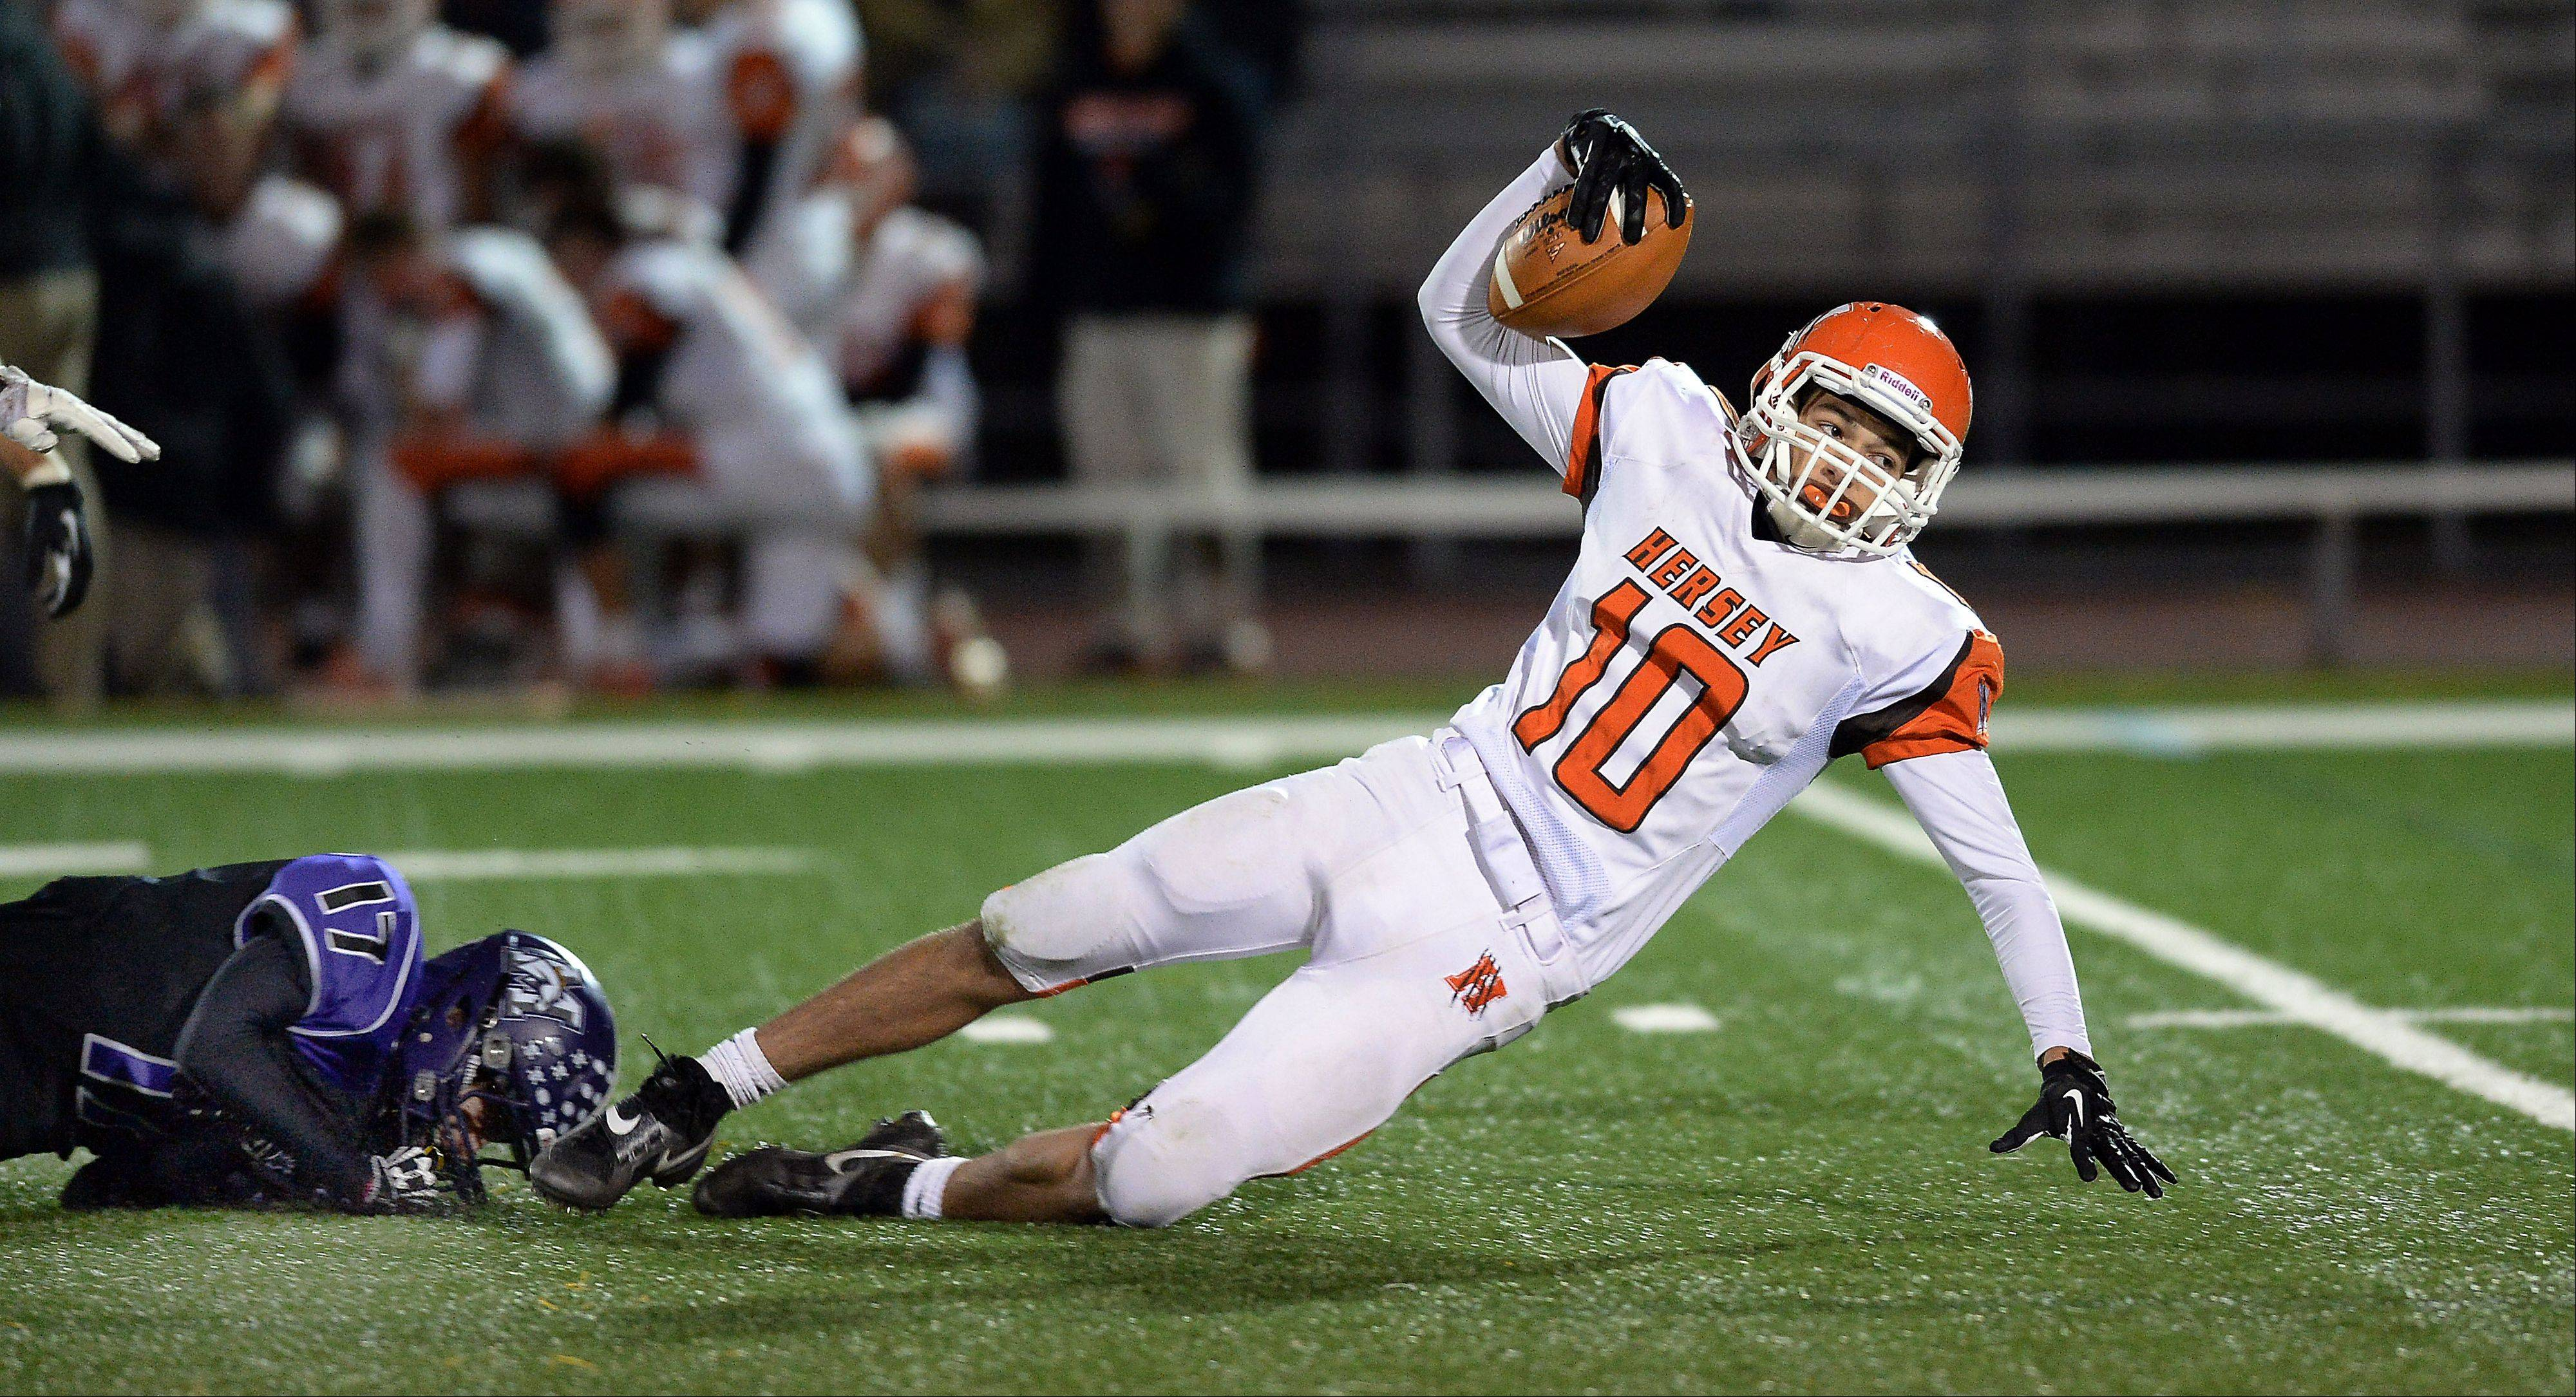 Rolling Meadows' Kevin Adair, left, stops Hersey's Eddie Miklasz during Friday's football game in Rolling Meadows.